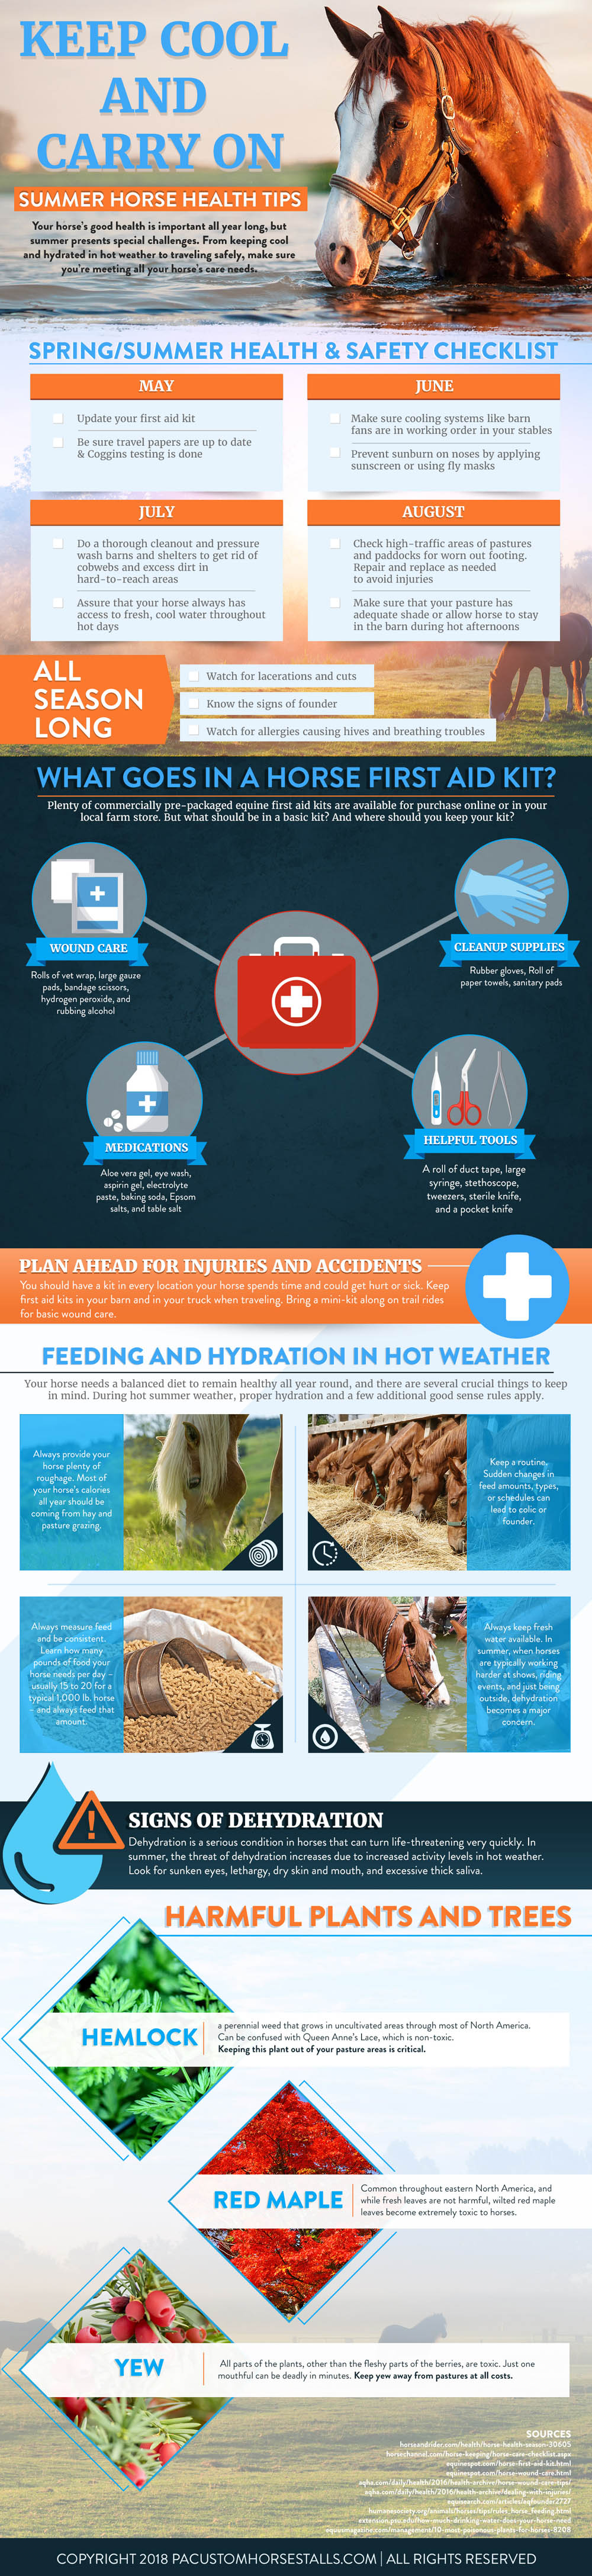 How to Care for Your Horse in the Hot Summer Months - Infographic